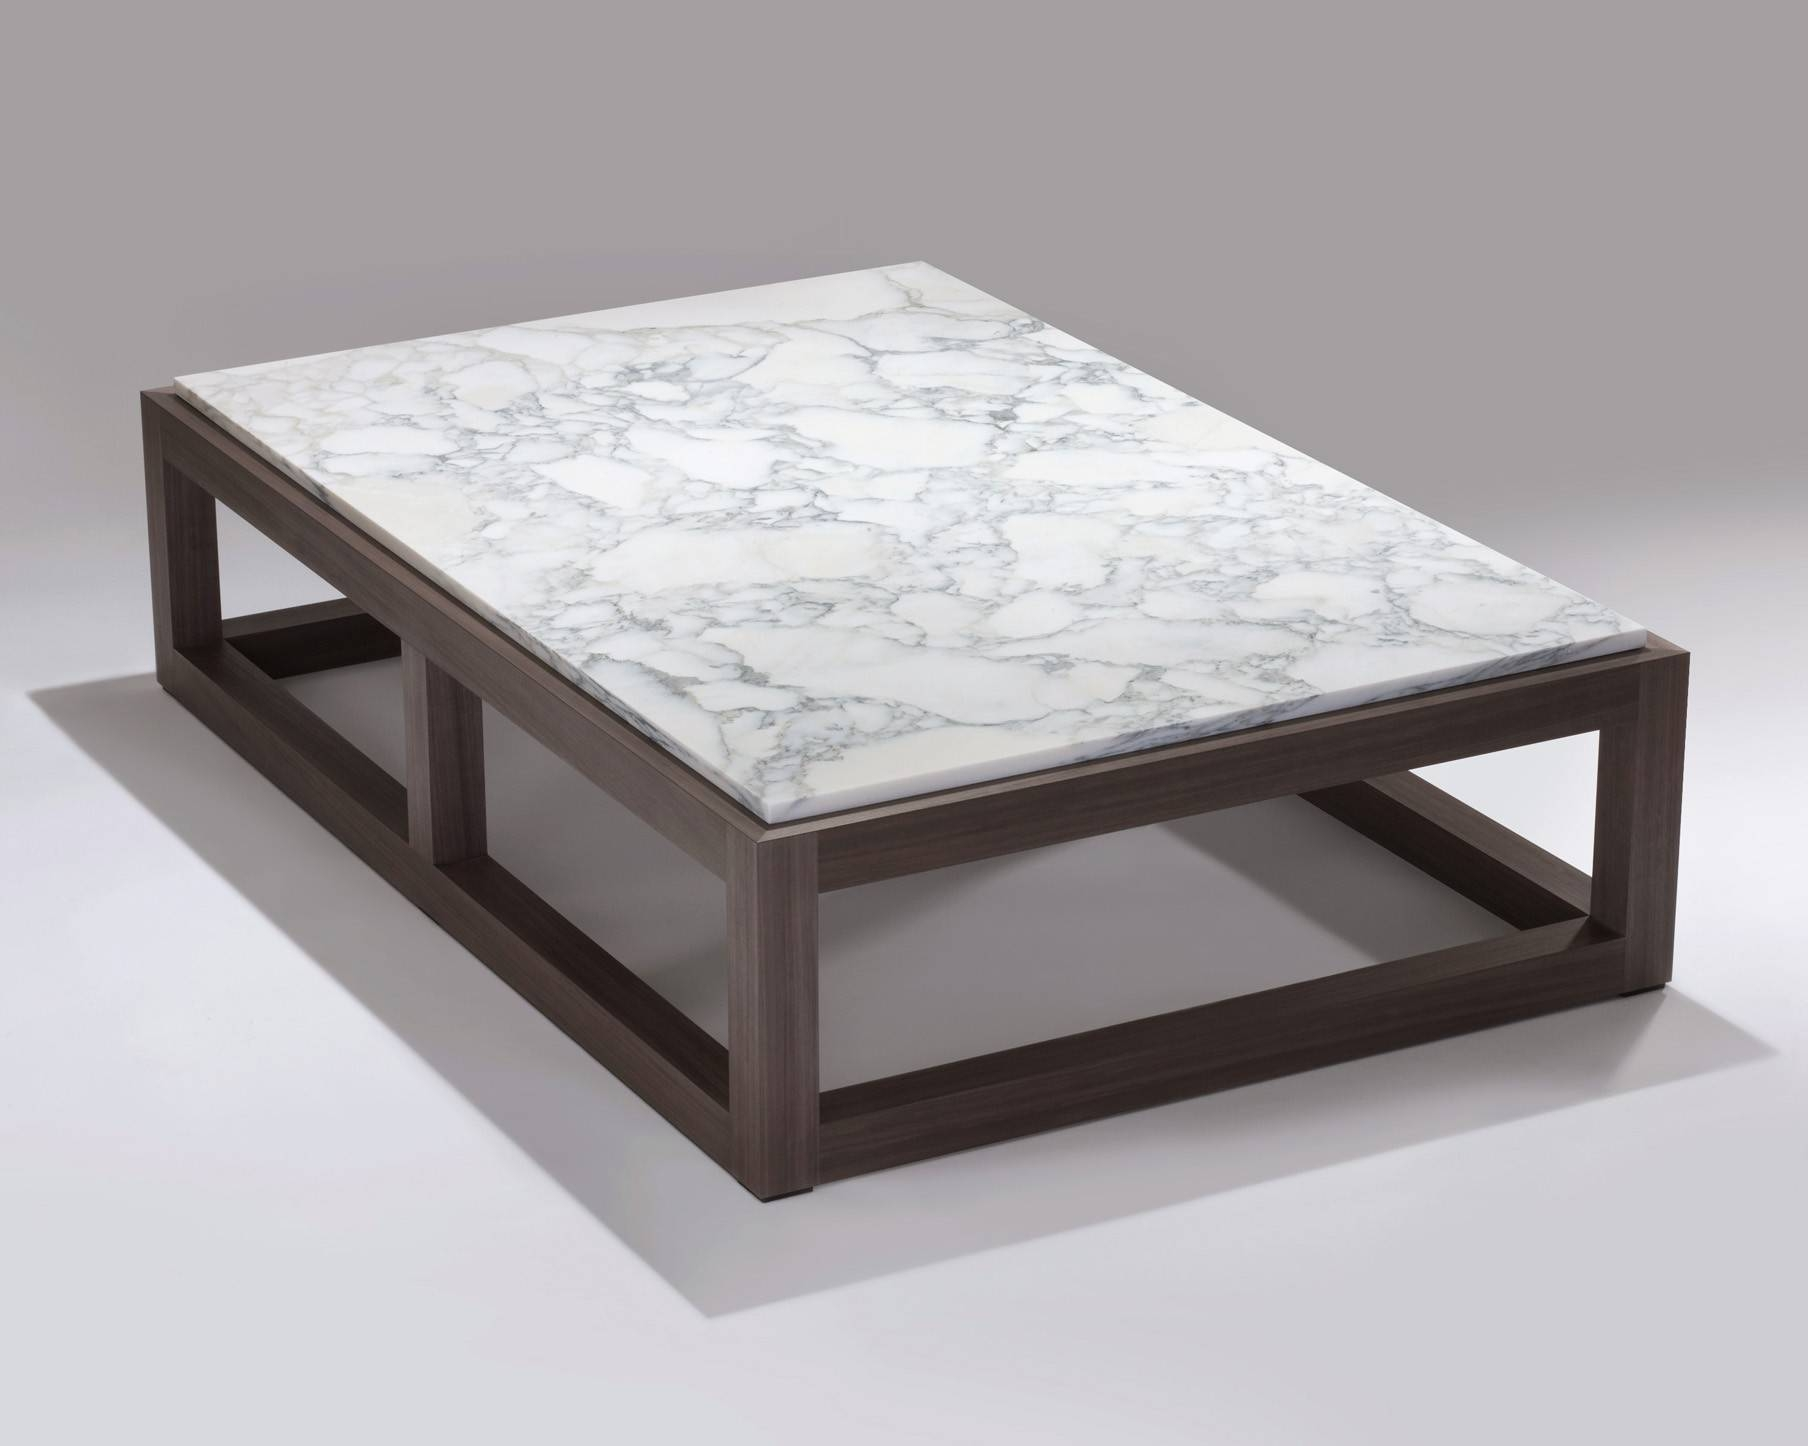 Square Stone Top Coffee Table : Awesome Design Of Stone Top Coffee with Square Stone Coffee Tables (Image 27 of 30)